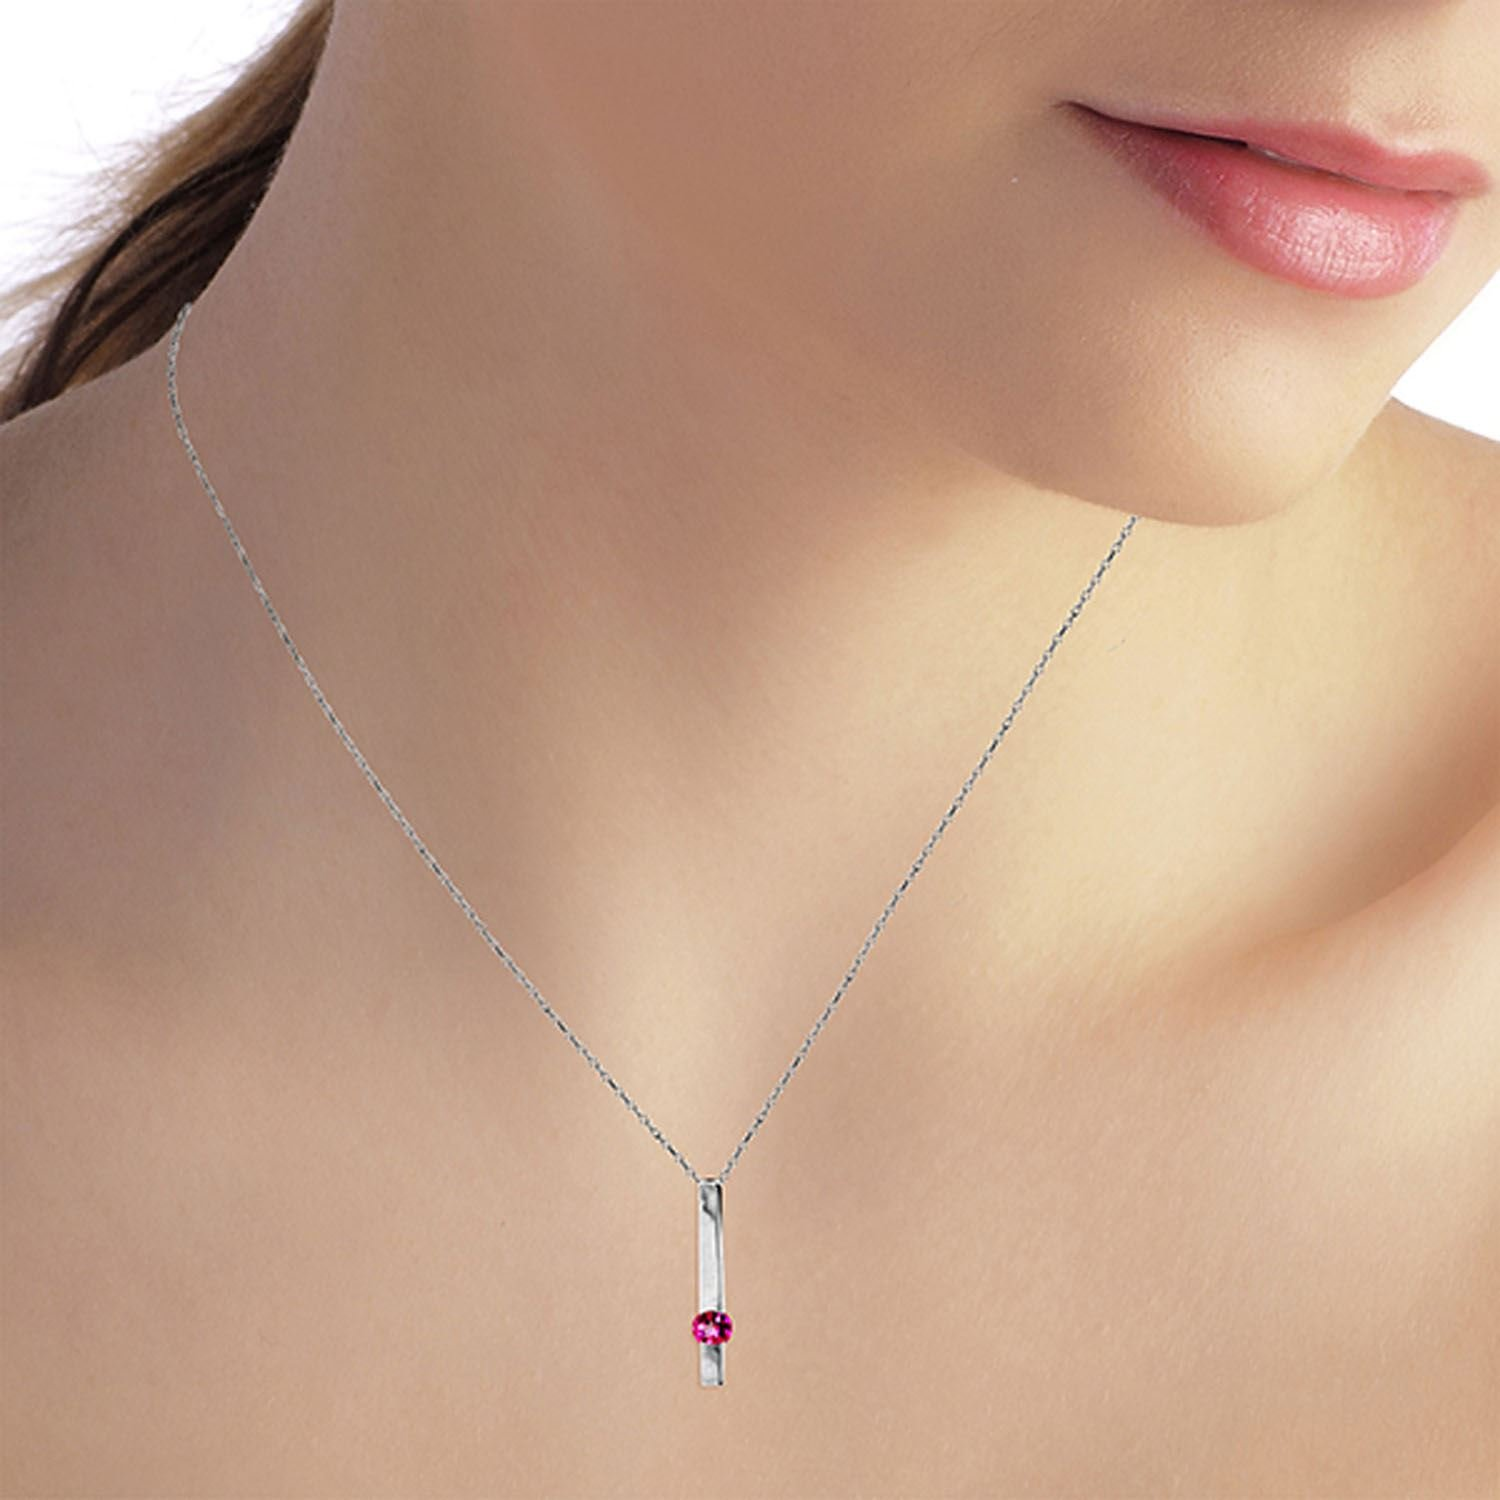 ALARRI 0.25 Carat 14K Solid White Gold Look Inward Pink Topaz Necklace with 20 Inch Chain Length